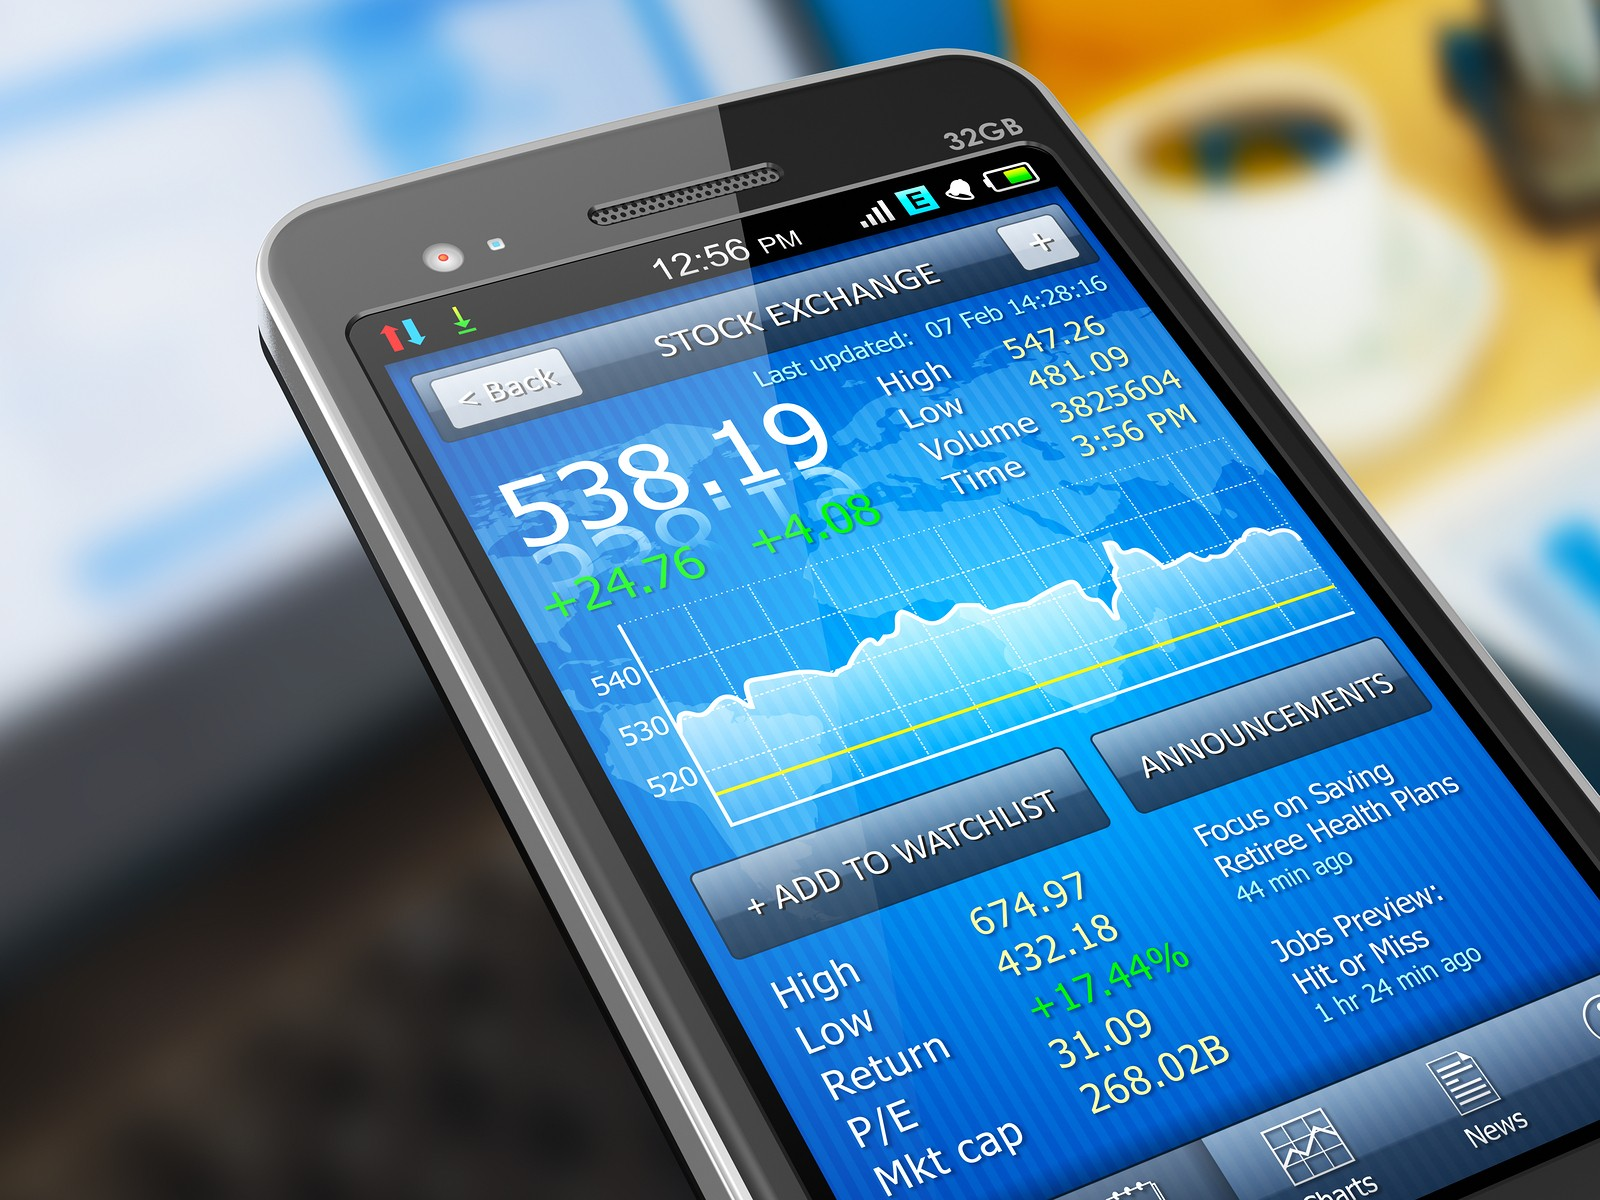 stock market app on android phone